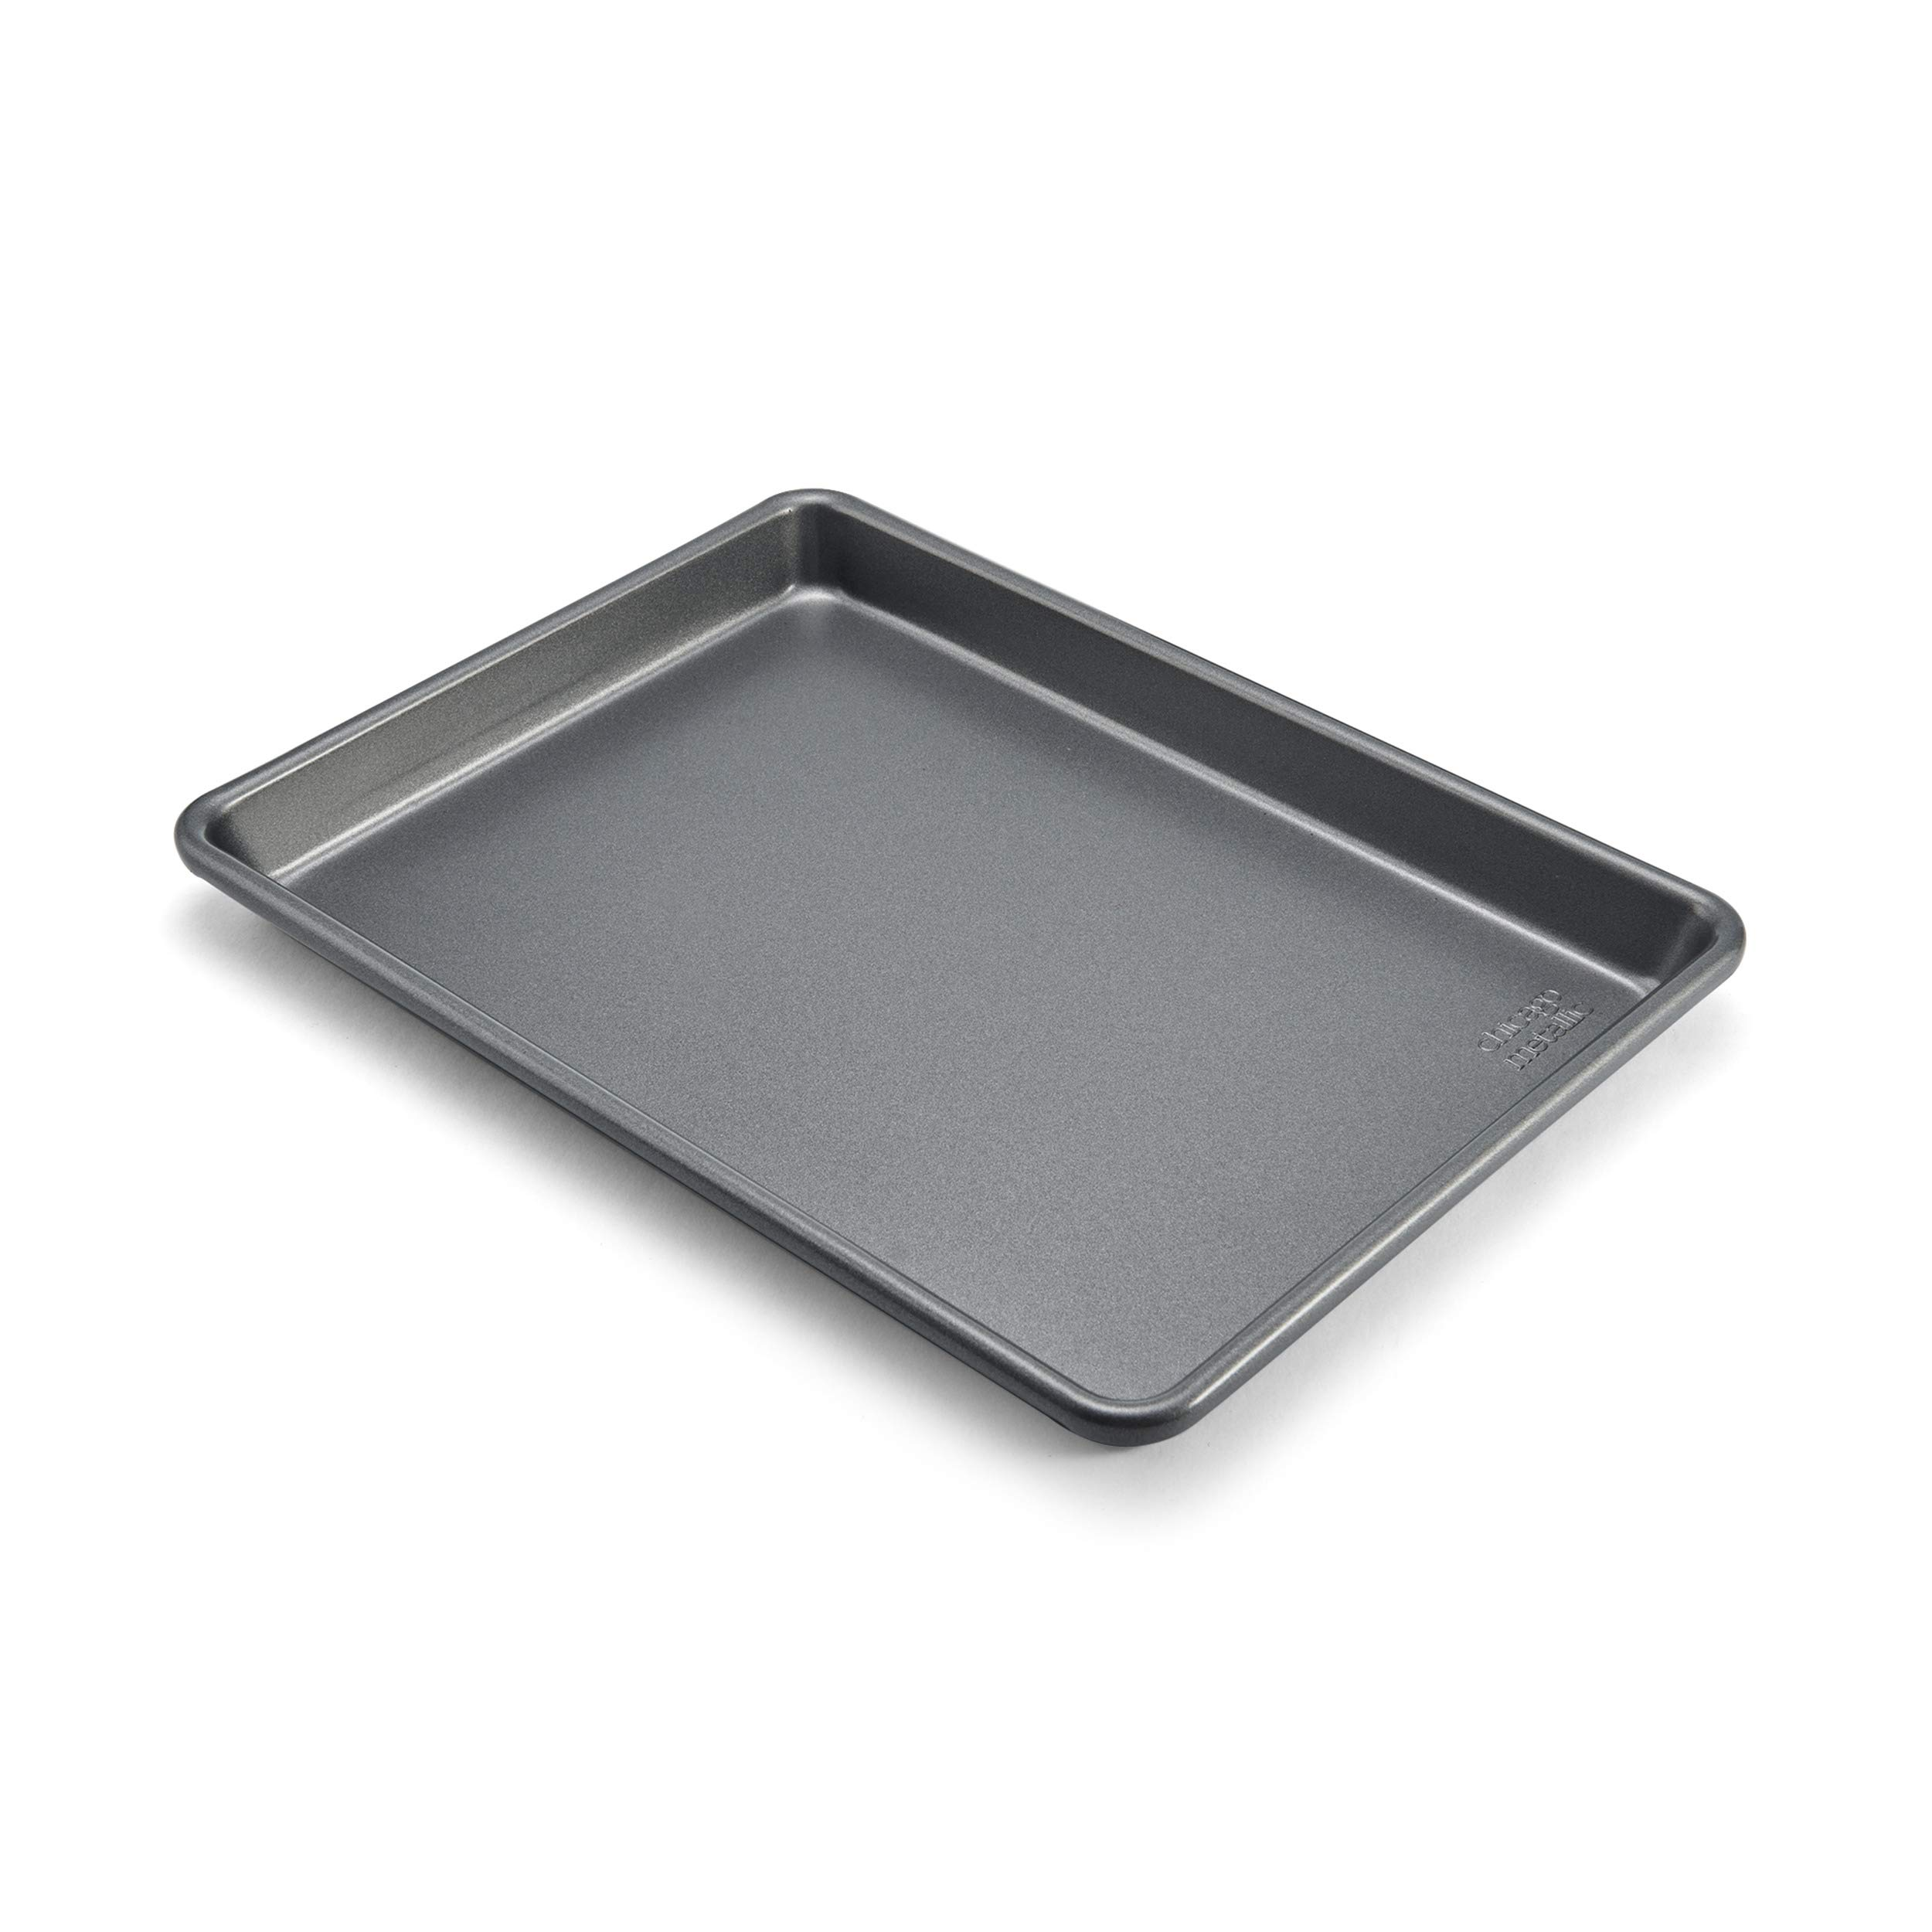 Chicago Metallic Commercial II Non-Stick Small Jelly Roll Pan, 13 by 9.5-Inch by Chicago Metallic (Image #1)